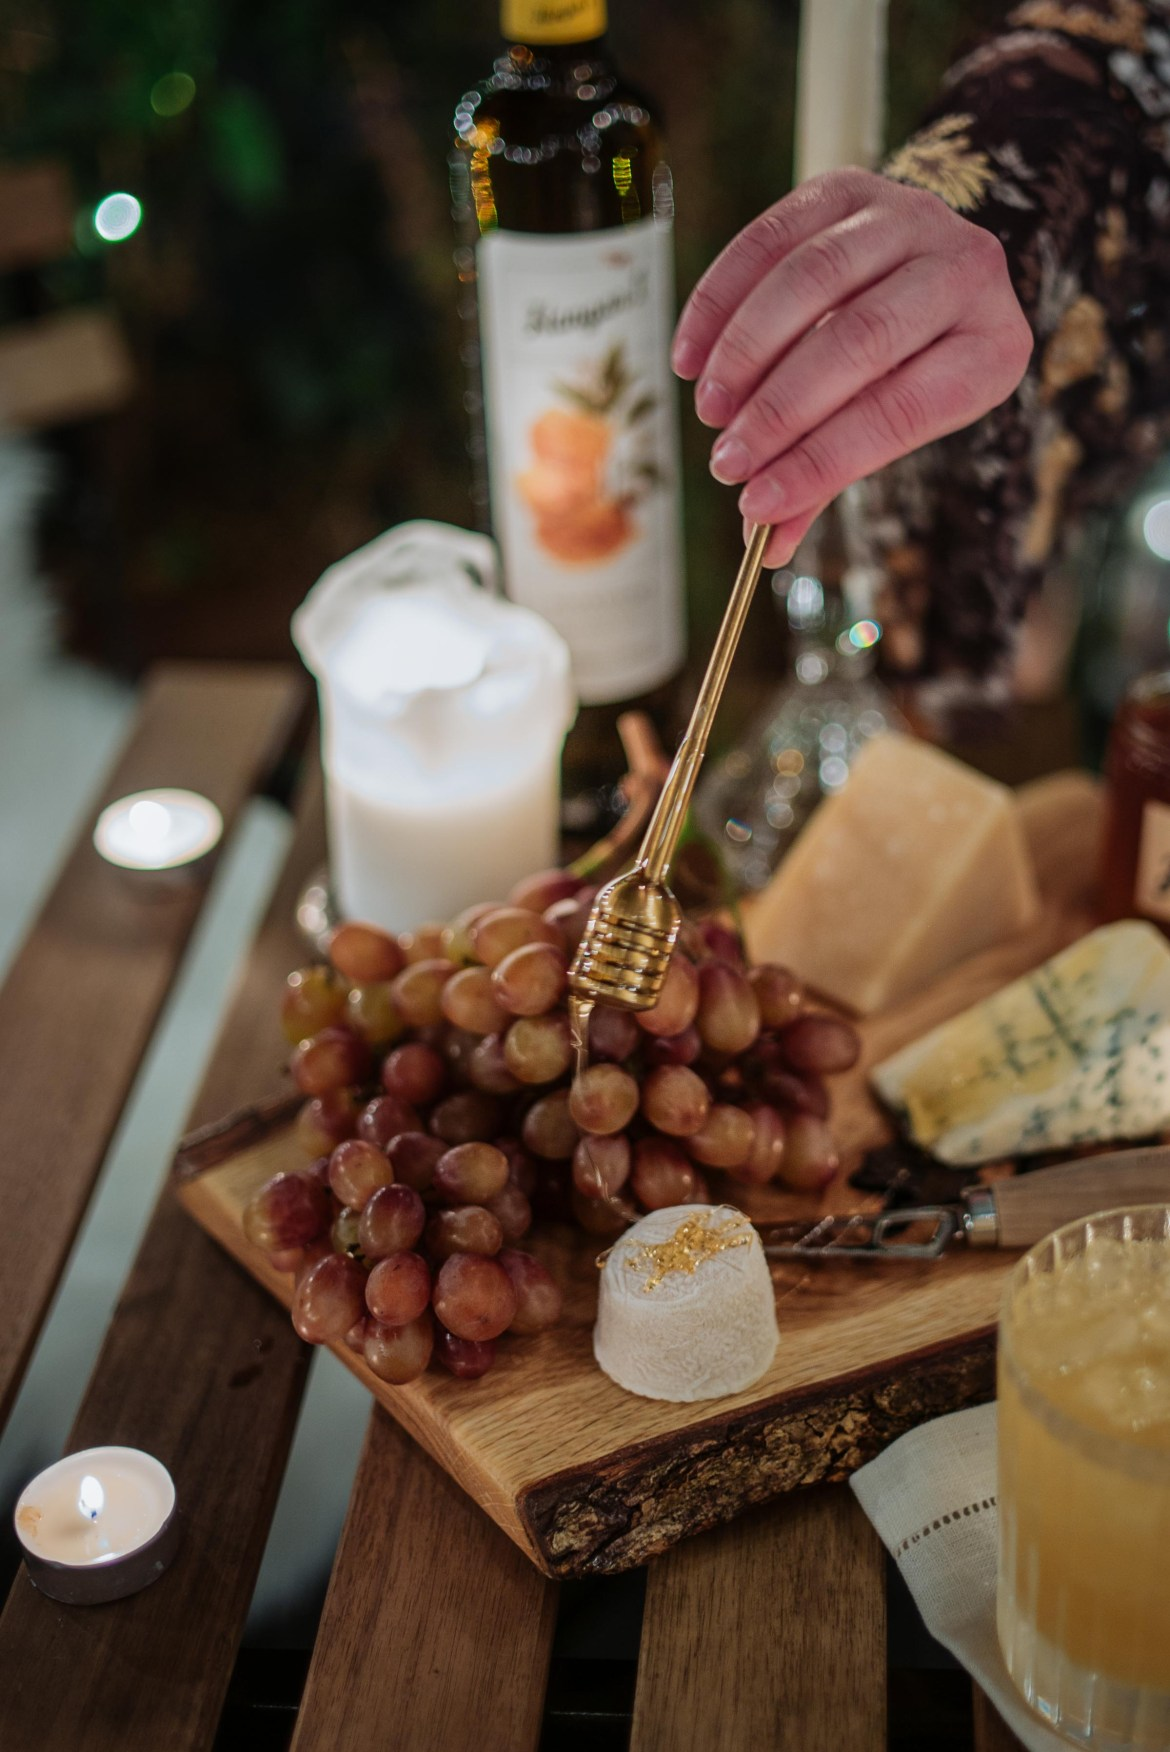 If you love honey, you'll love this! What cheese pairs best with honey? Goat cheese, blue cheese, hard cheese, Parmesan, Gouda. What cheese should you pair with honey? Sponsored by @Hangar1distillery.